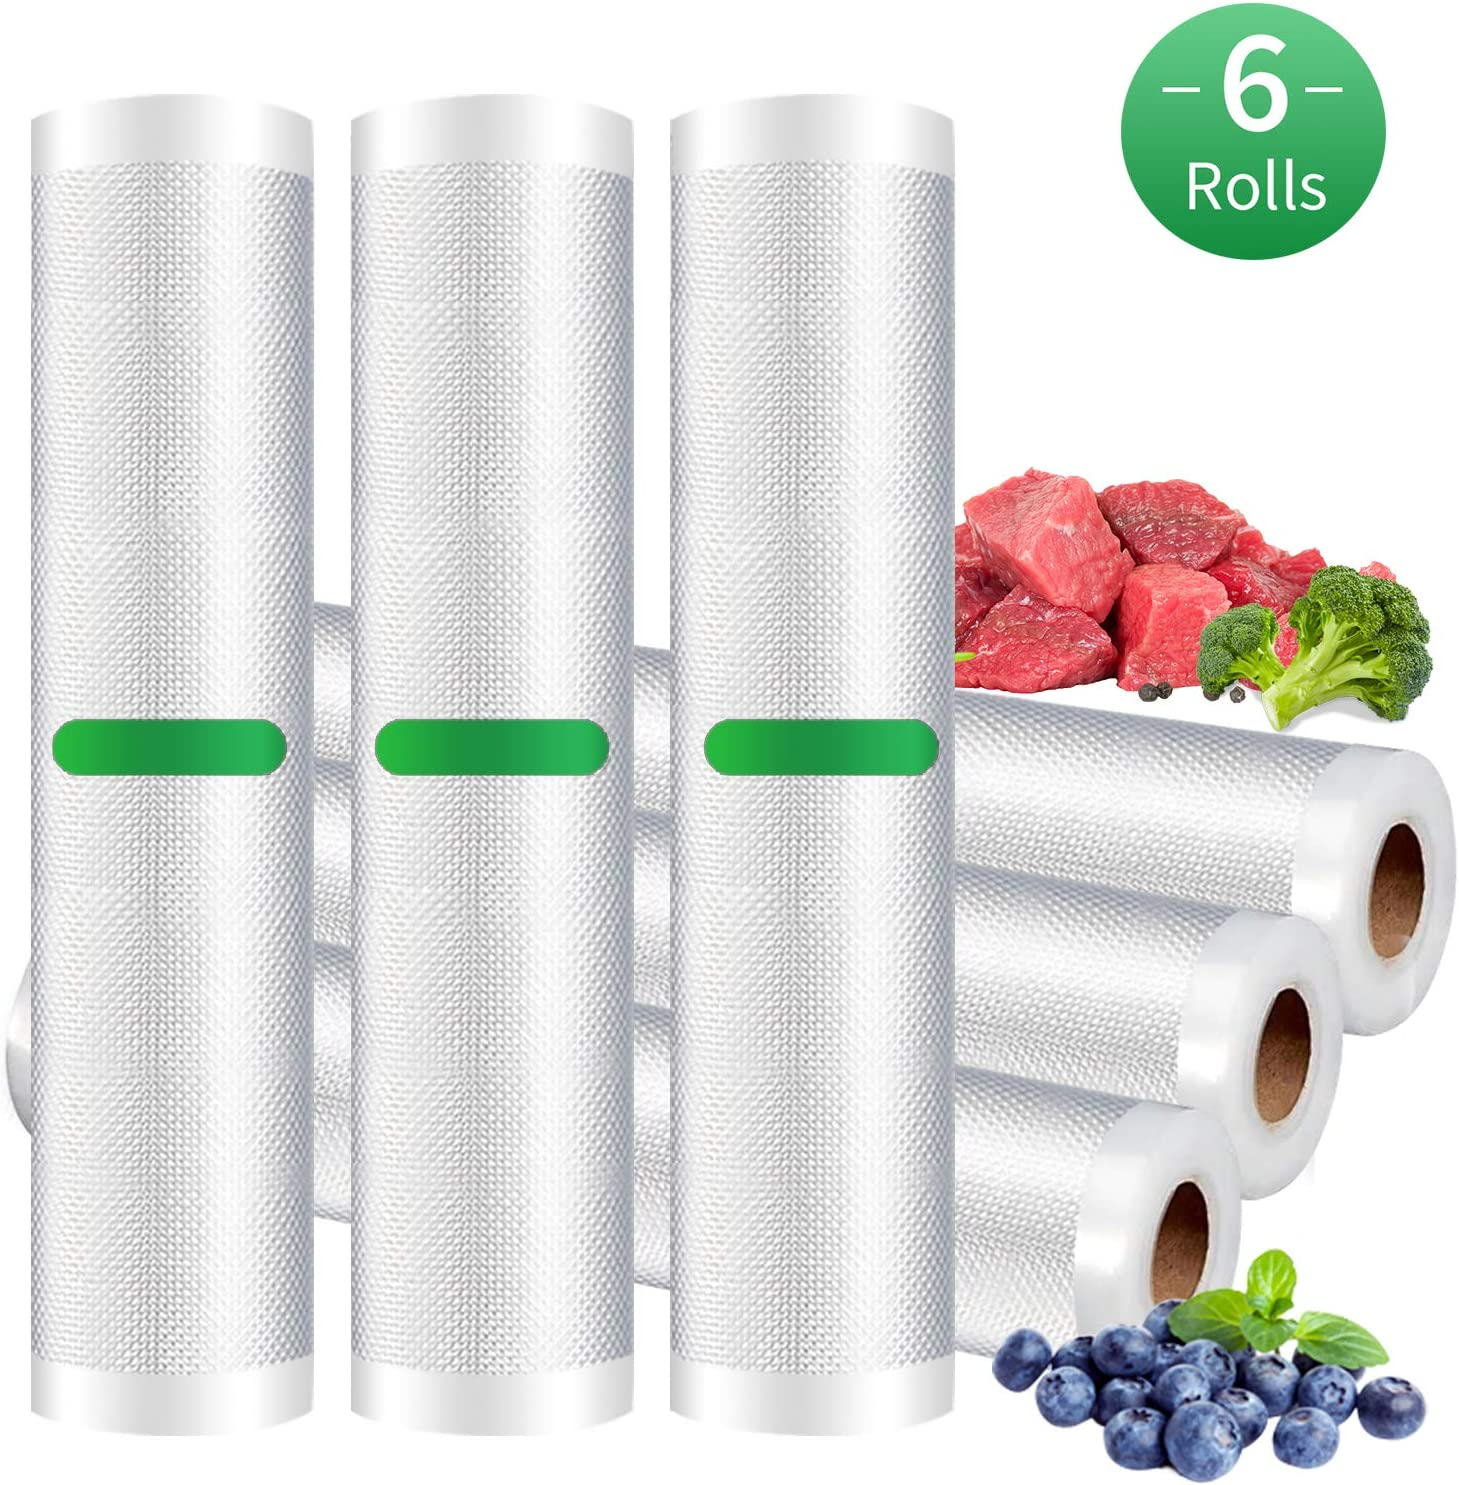 Vacuum Sealer Rolls,Beleeb Sous Vide Bags 6 Rolls(20cm x 300cm & 28 x 300cm) with Food Grade Materials,BPA Free,Puncture Prevention for Food Saver Sealer Vac Storage Bag Meal Prep